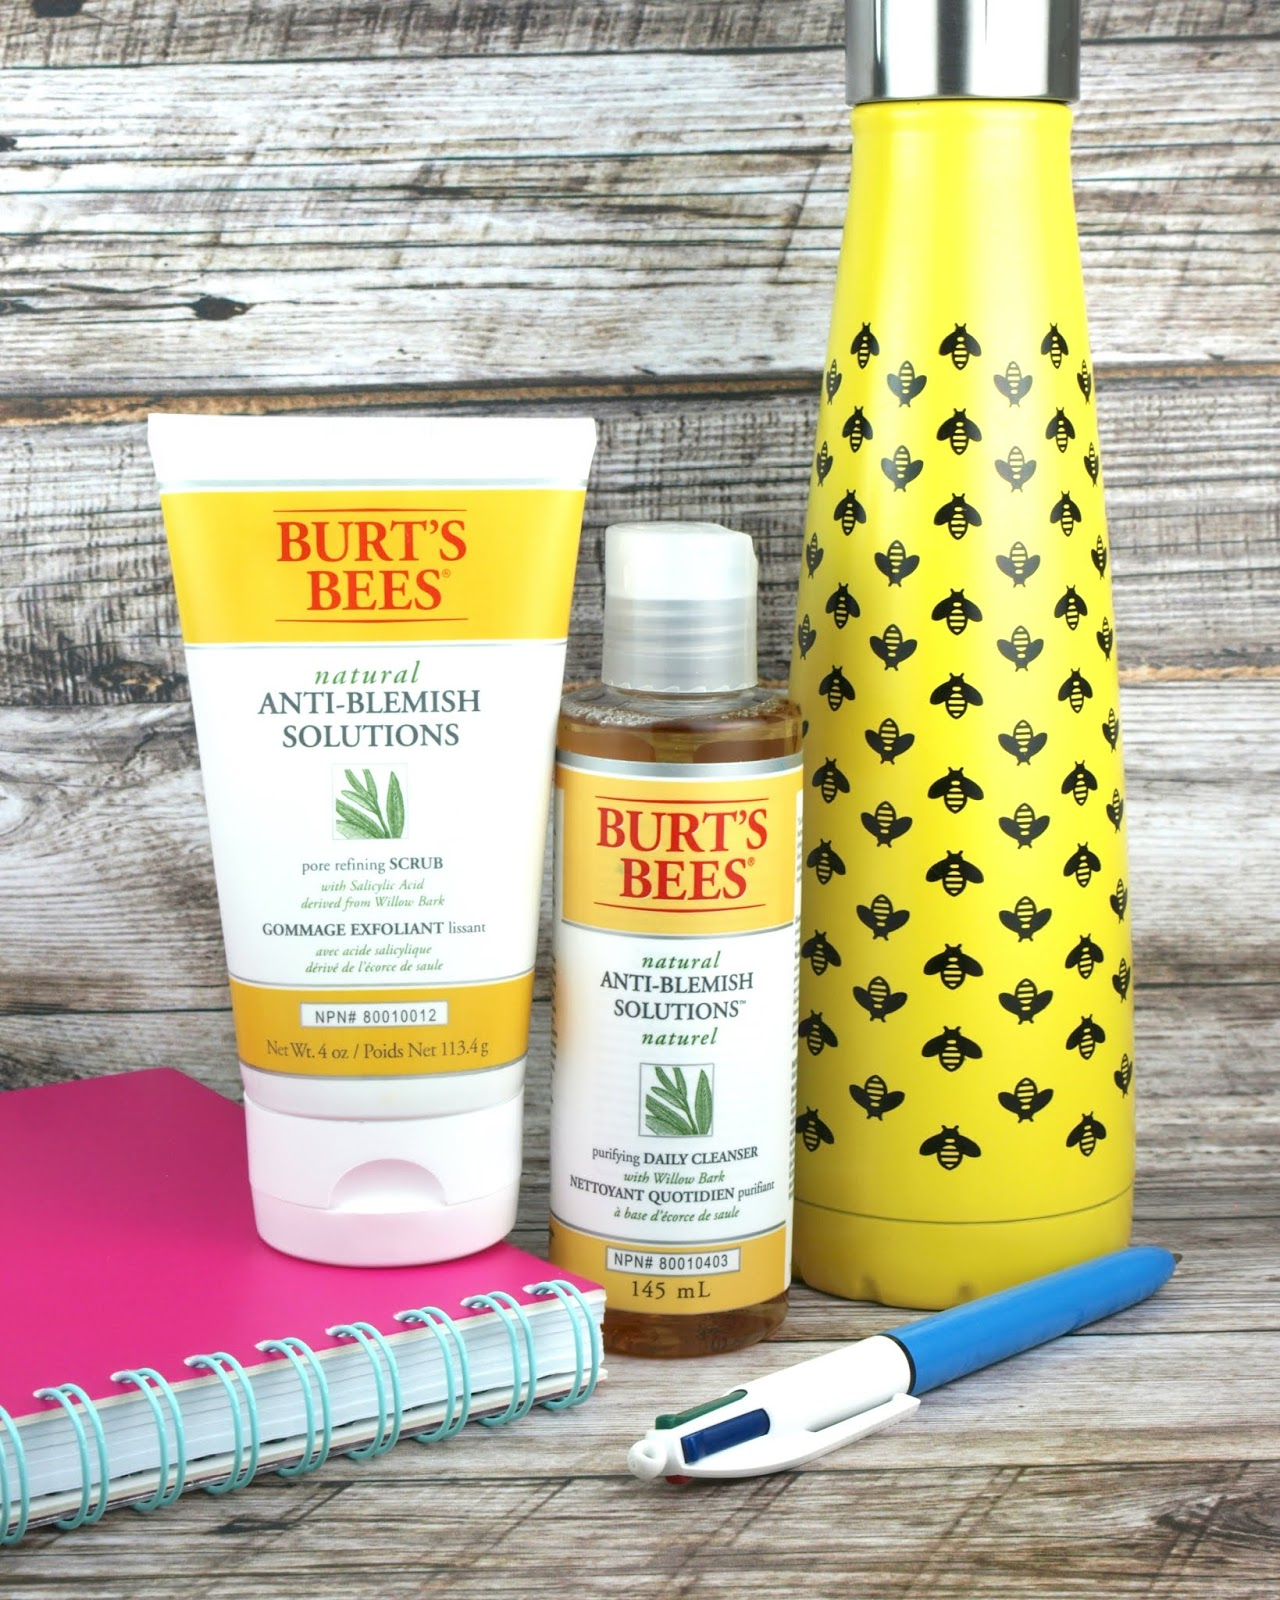 Burt's Bees | Natural Anti-Blemish Solutions Cleanser & Scrub: Review